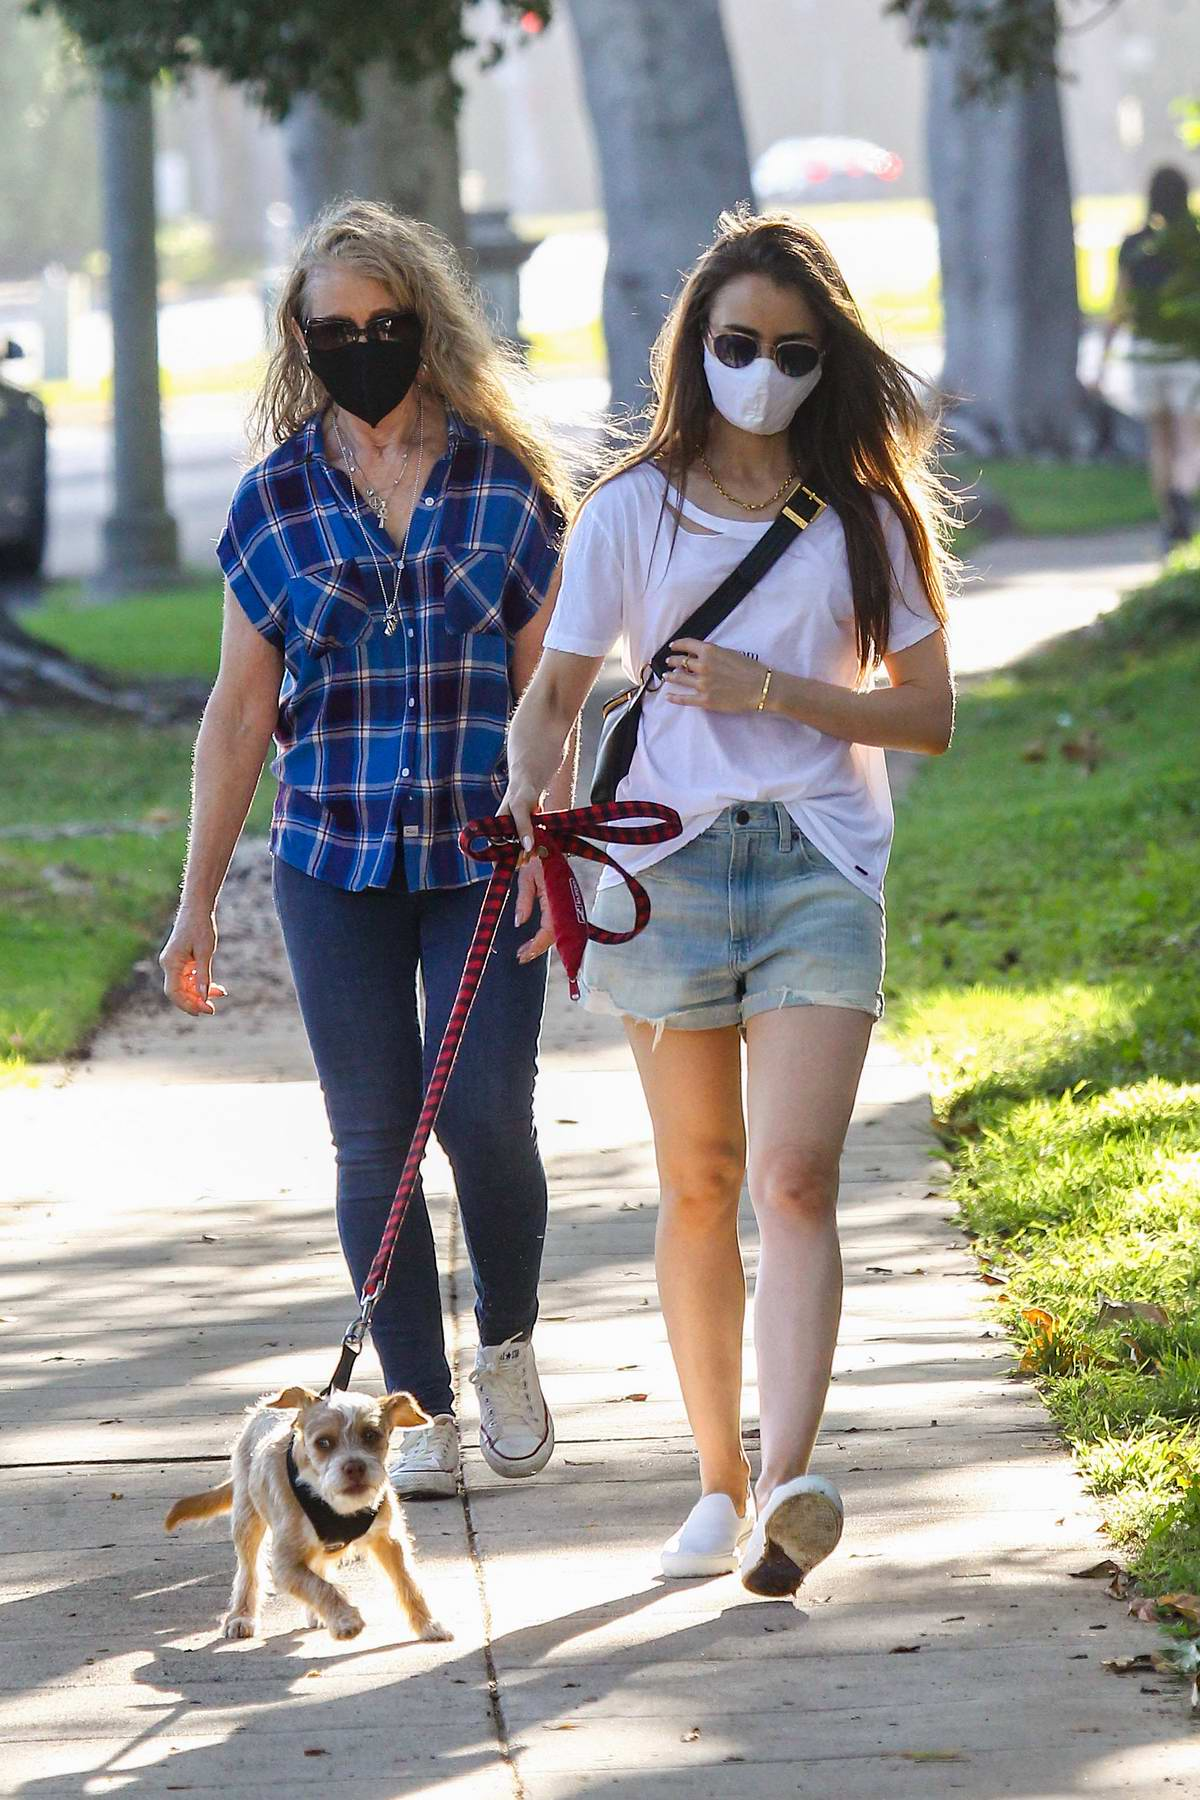 Lily Collins takes her dog out for a walk along with her mom in Los Angeles